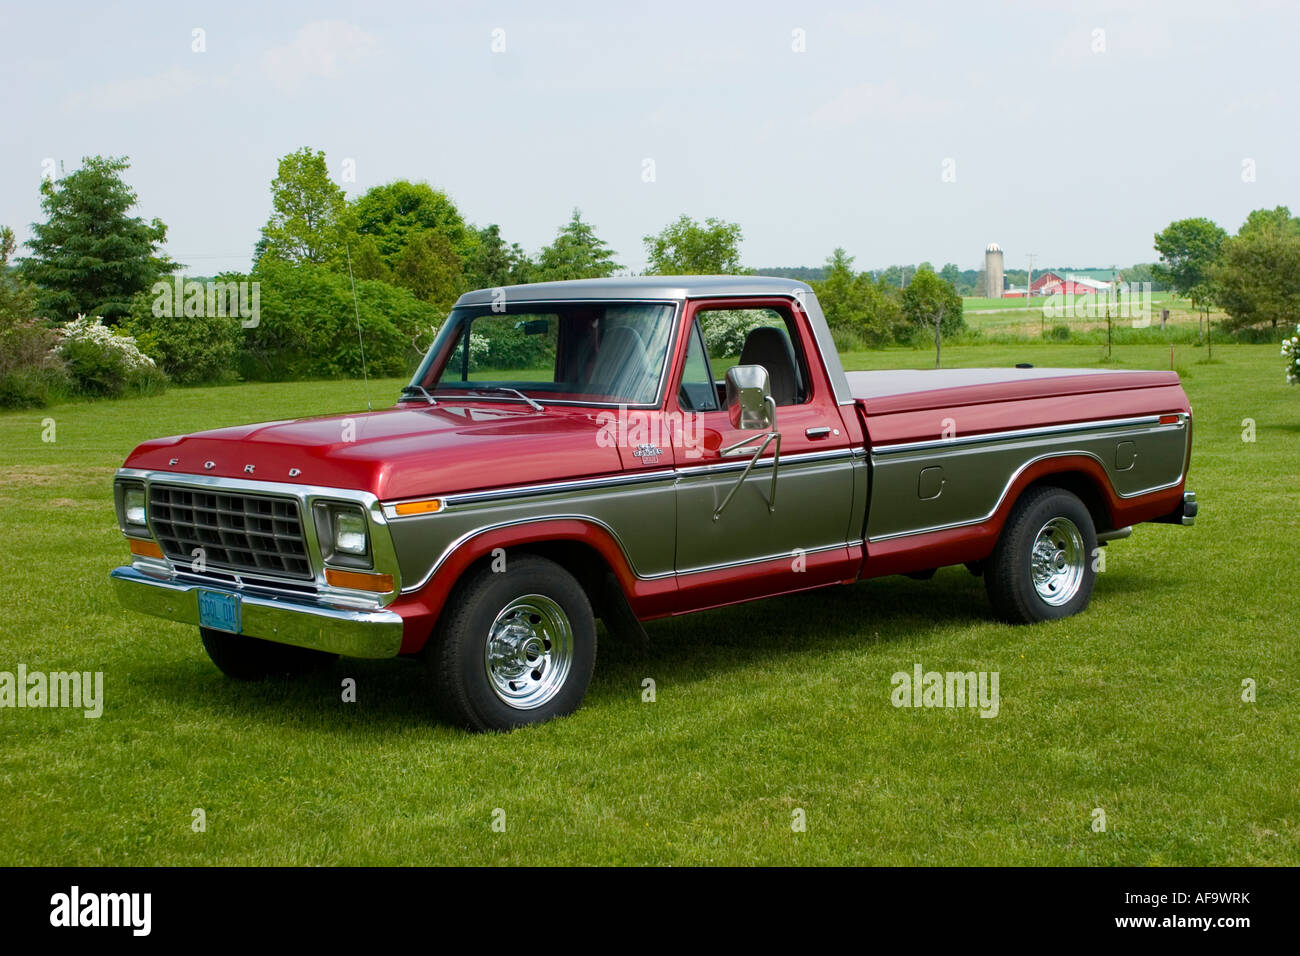 Ford Ranger Truck Stock Photos Images Alamy 1970 F100 Xlt 1979 F 250 Image